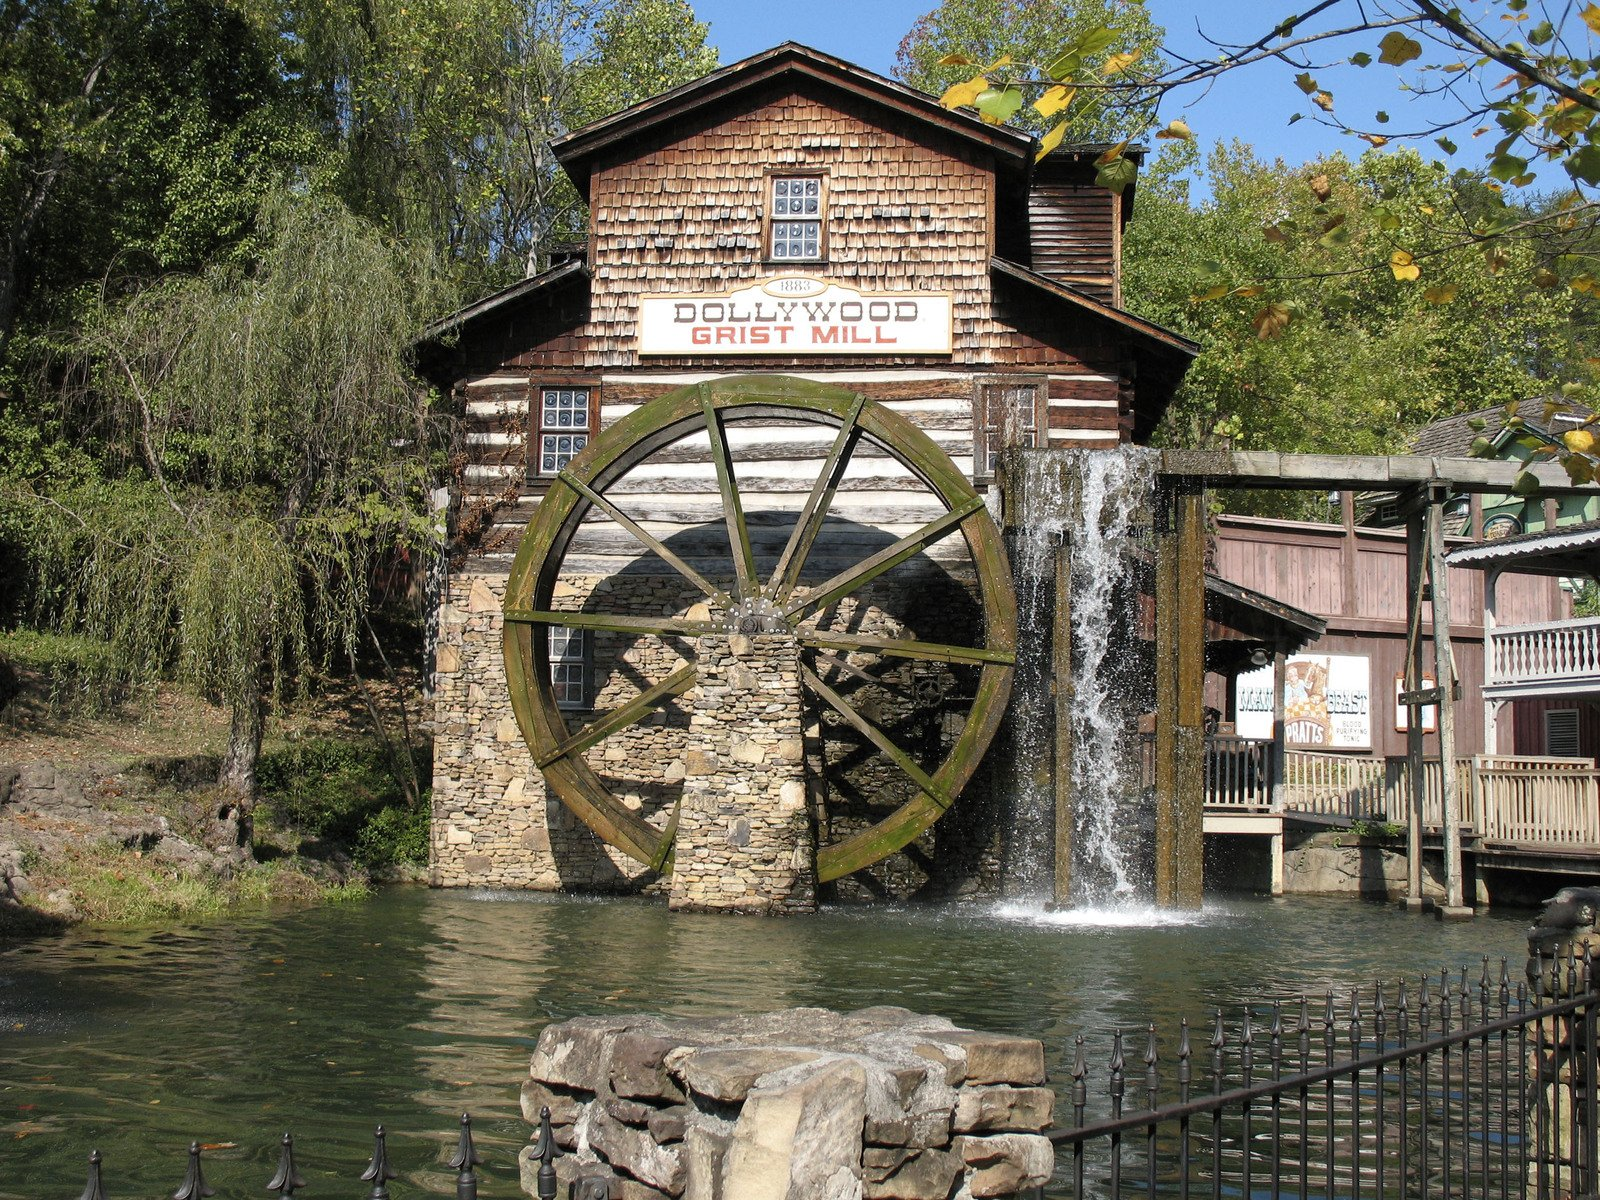 Dollywood Grist Mill / Courtney Backlund / FreeImages